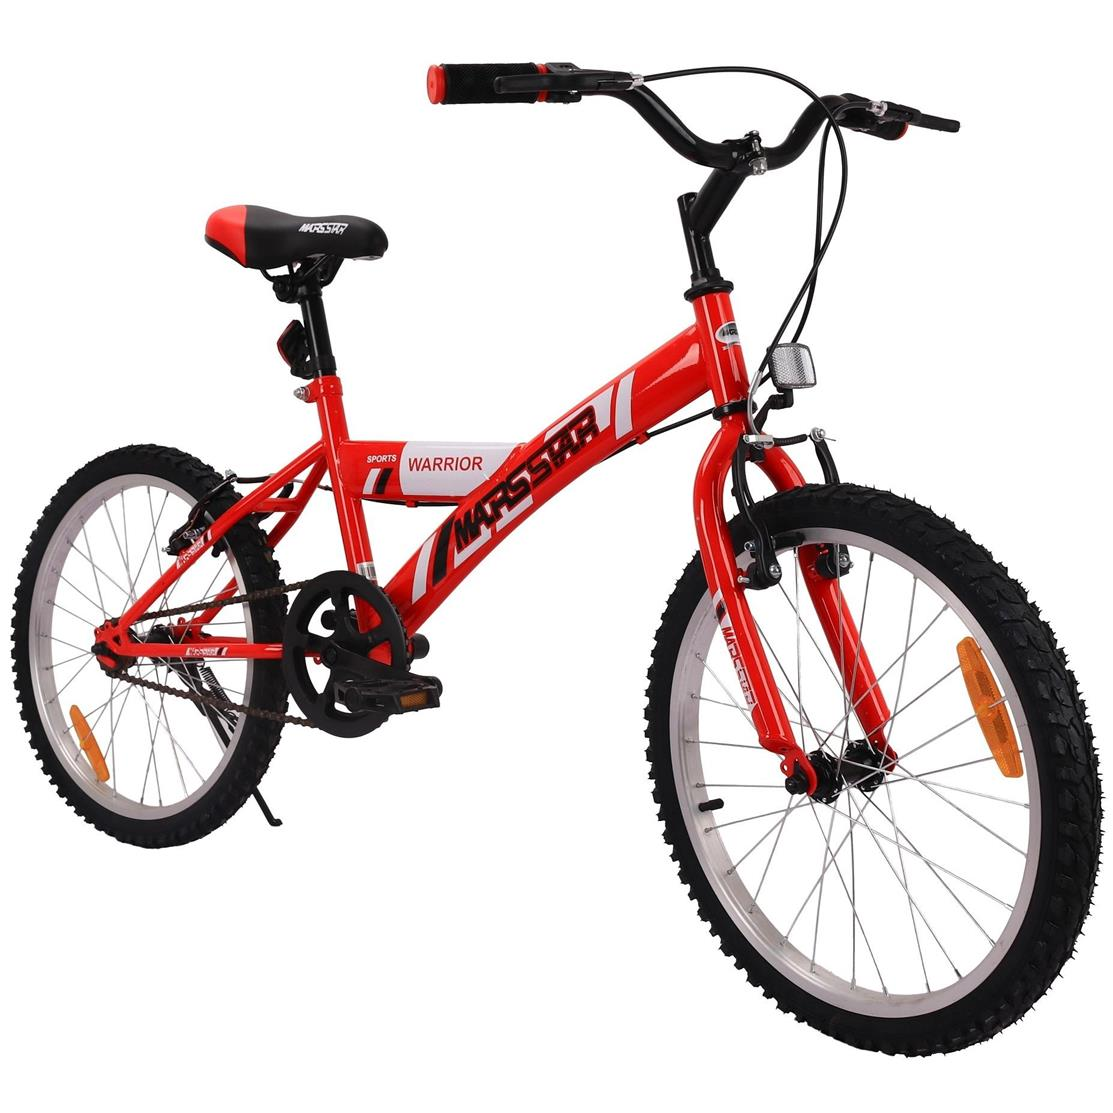 "MARSSTAR 20"" Alloy Rim Bicycle 2001 WARRIOR (New Red)"